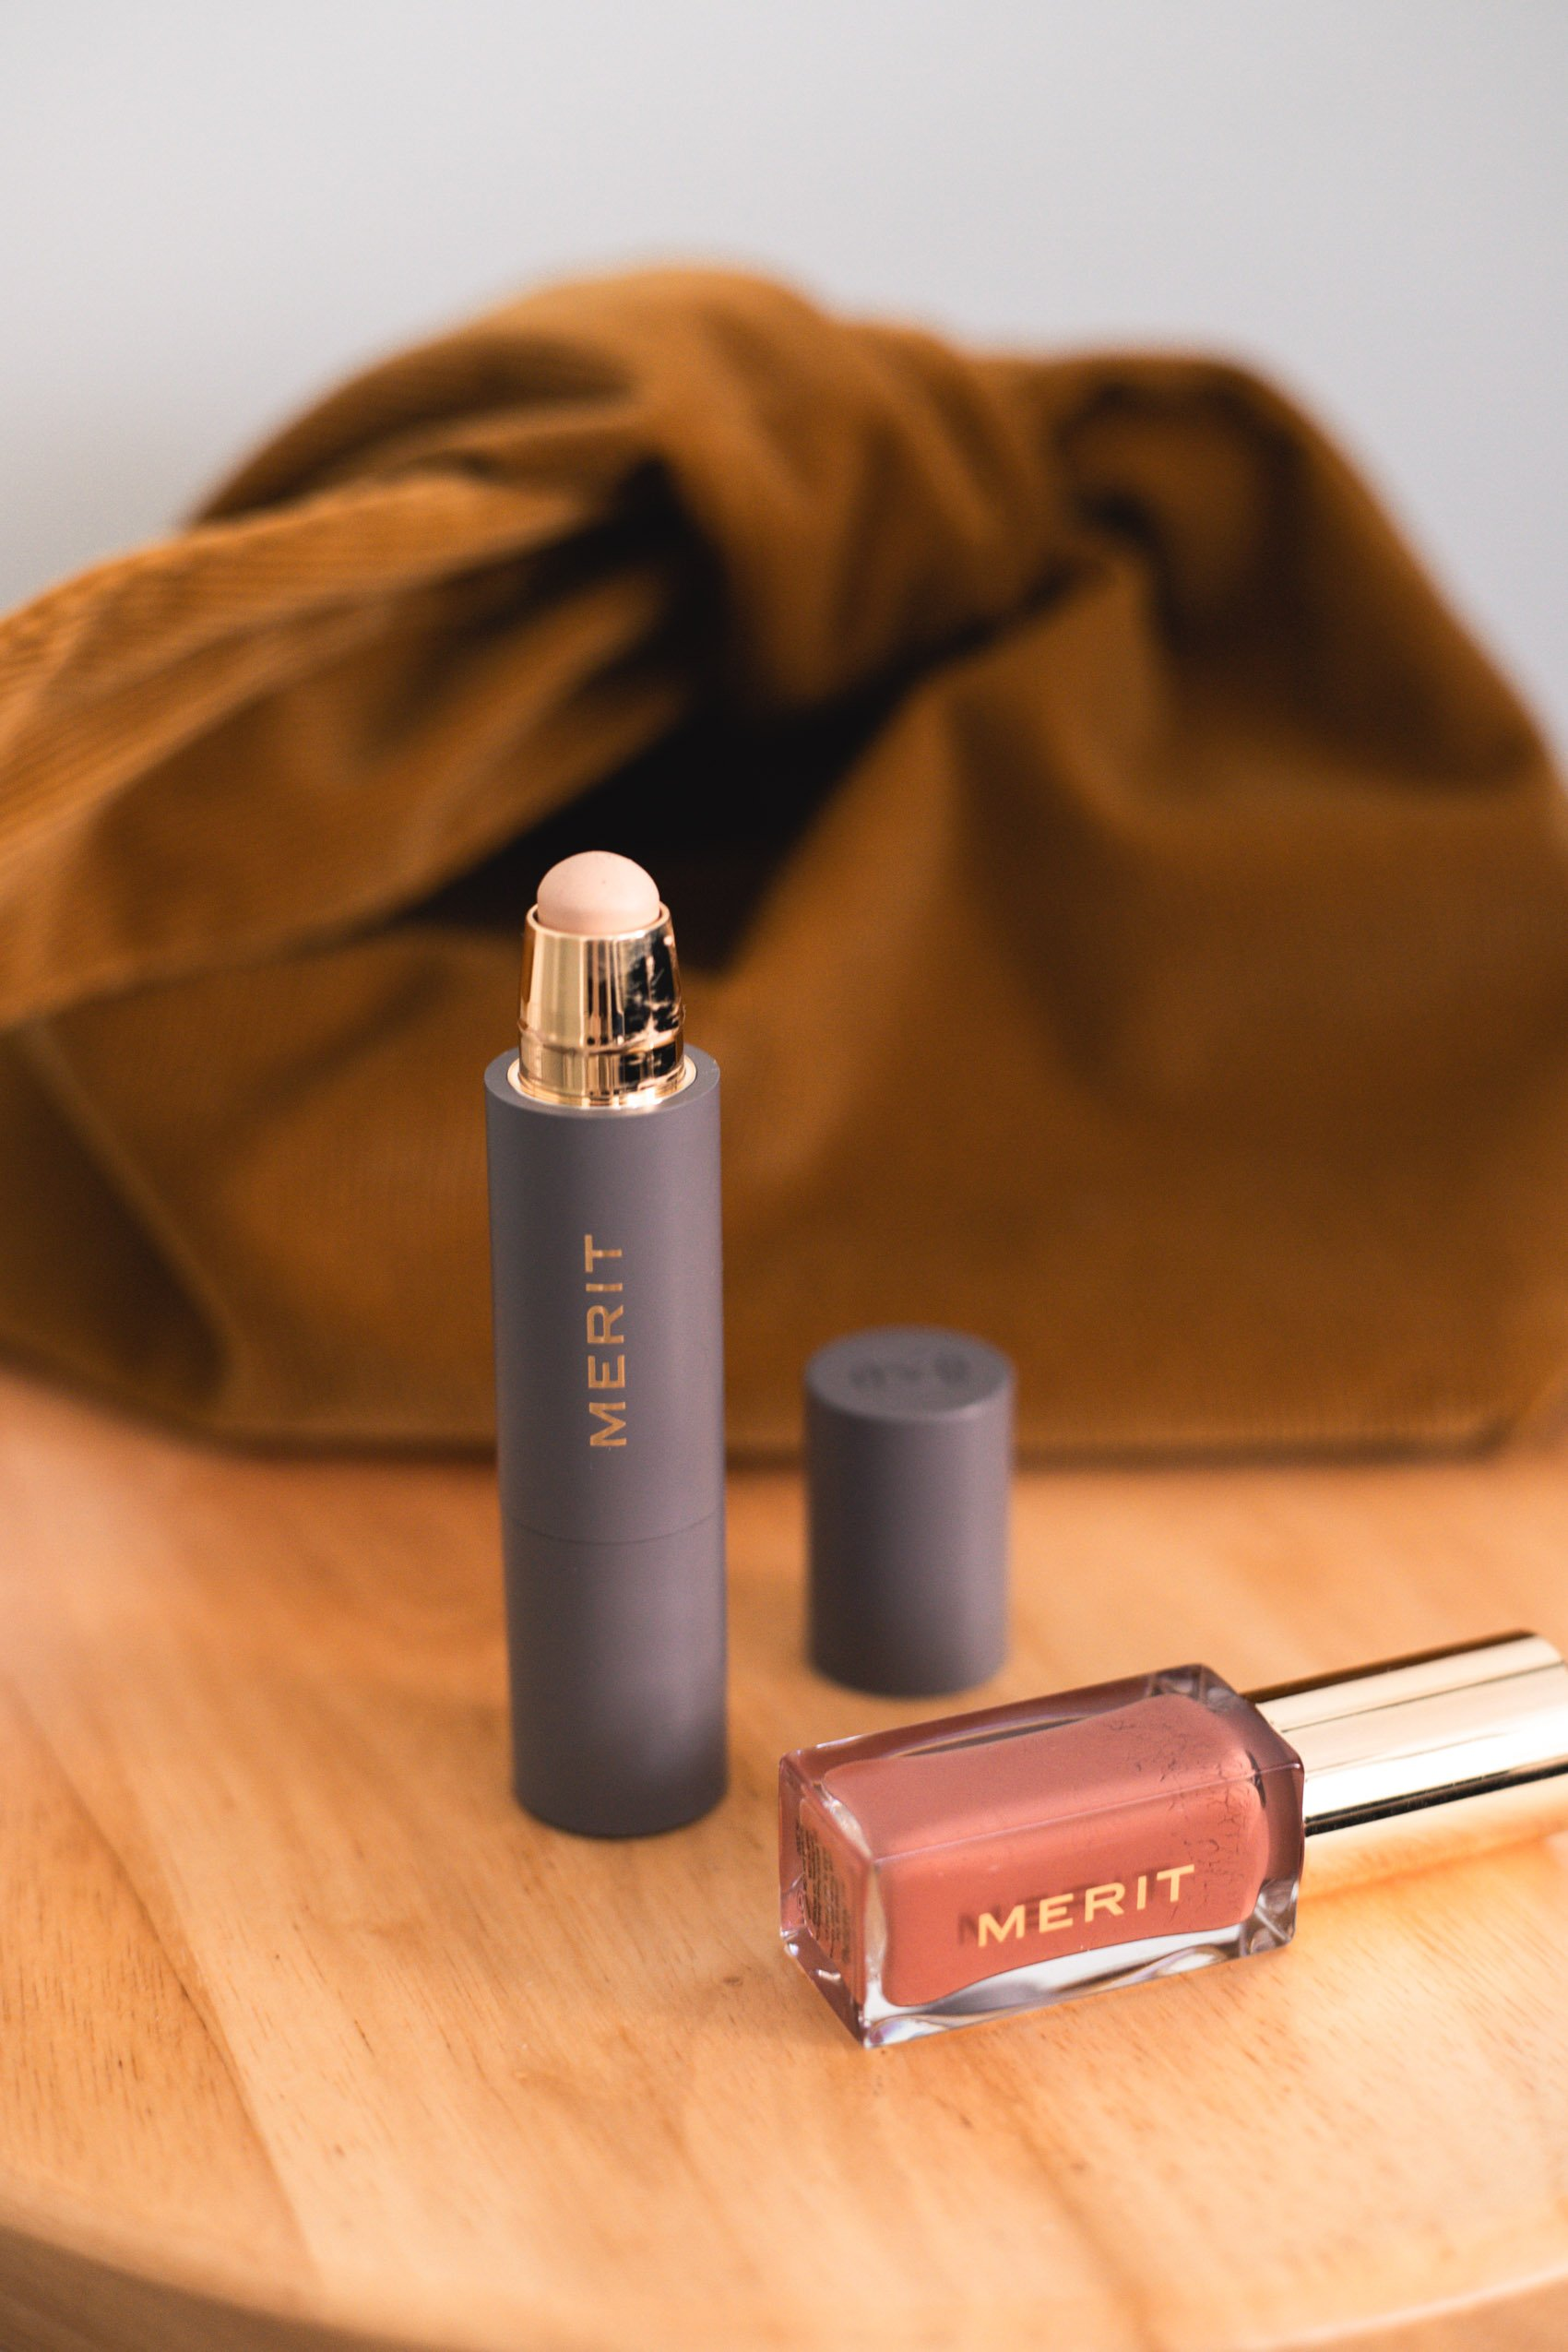 The Minimalist Perfecting Complexion Stick Review from the clean, minimalist makeup line Merit